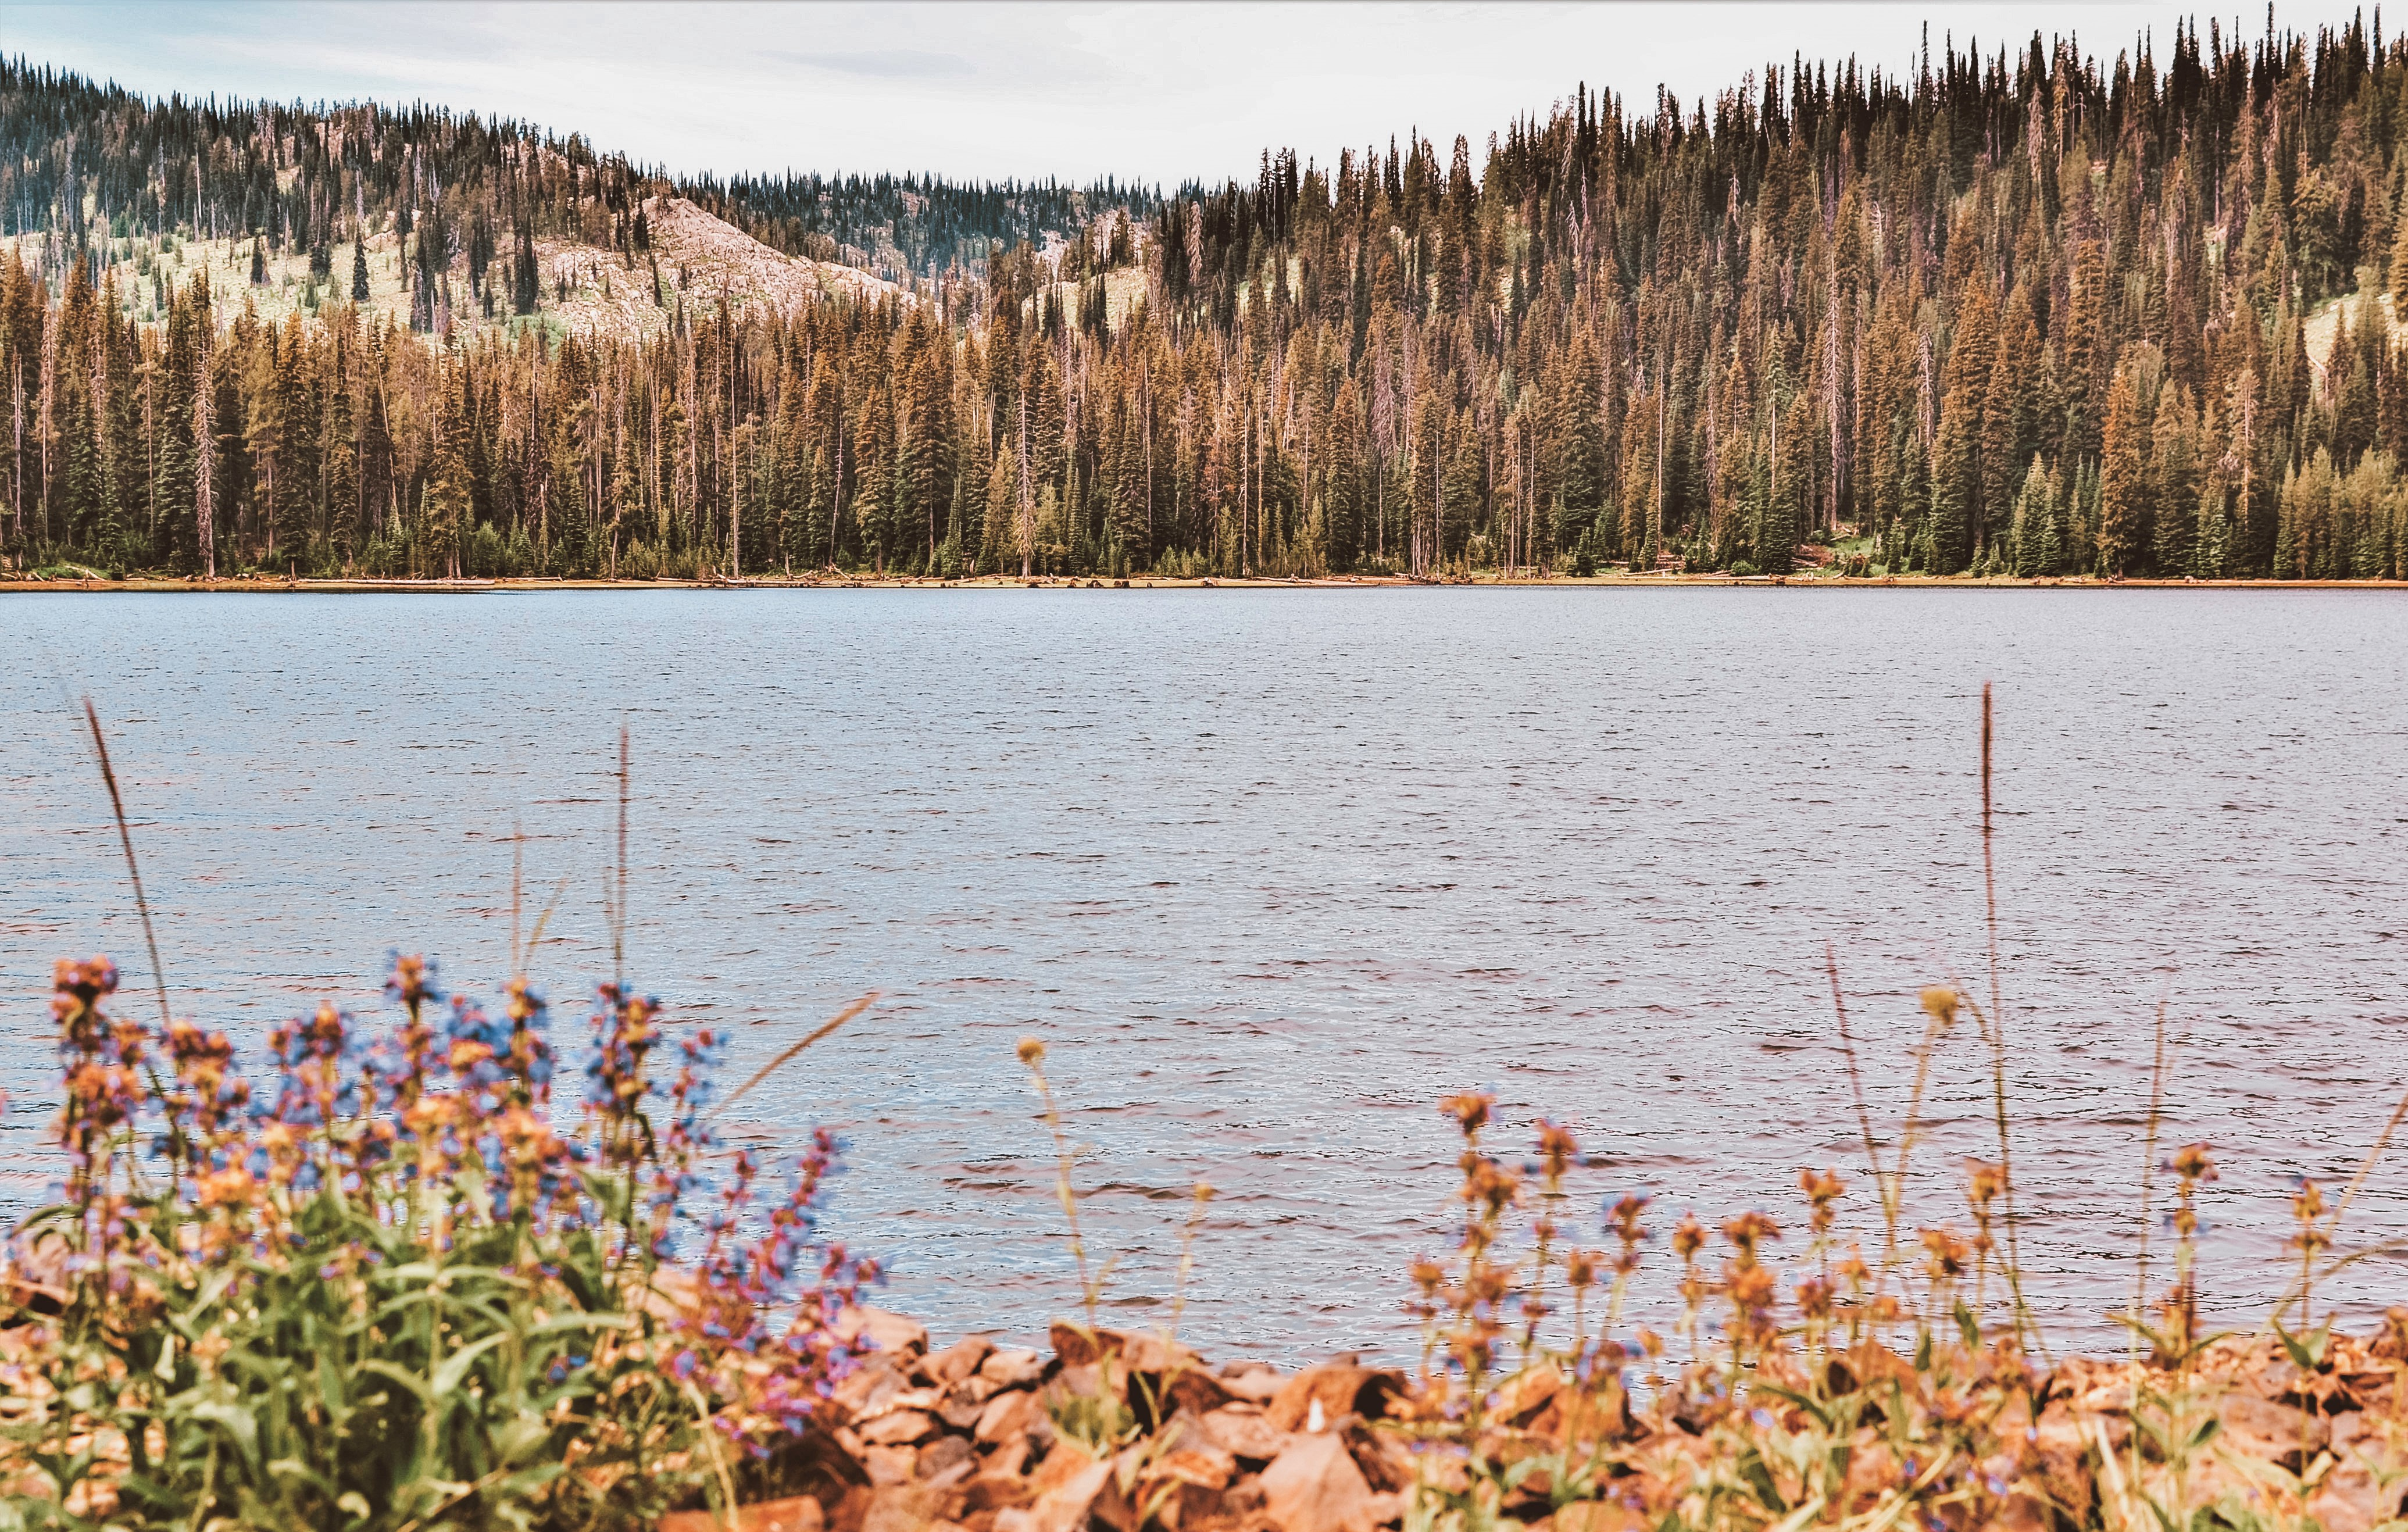 Goose Lake on the New Meadows Ranger District.